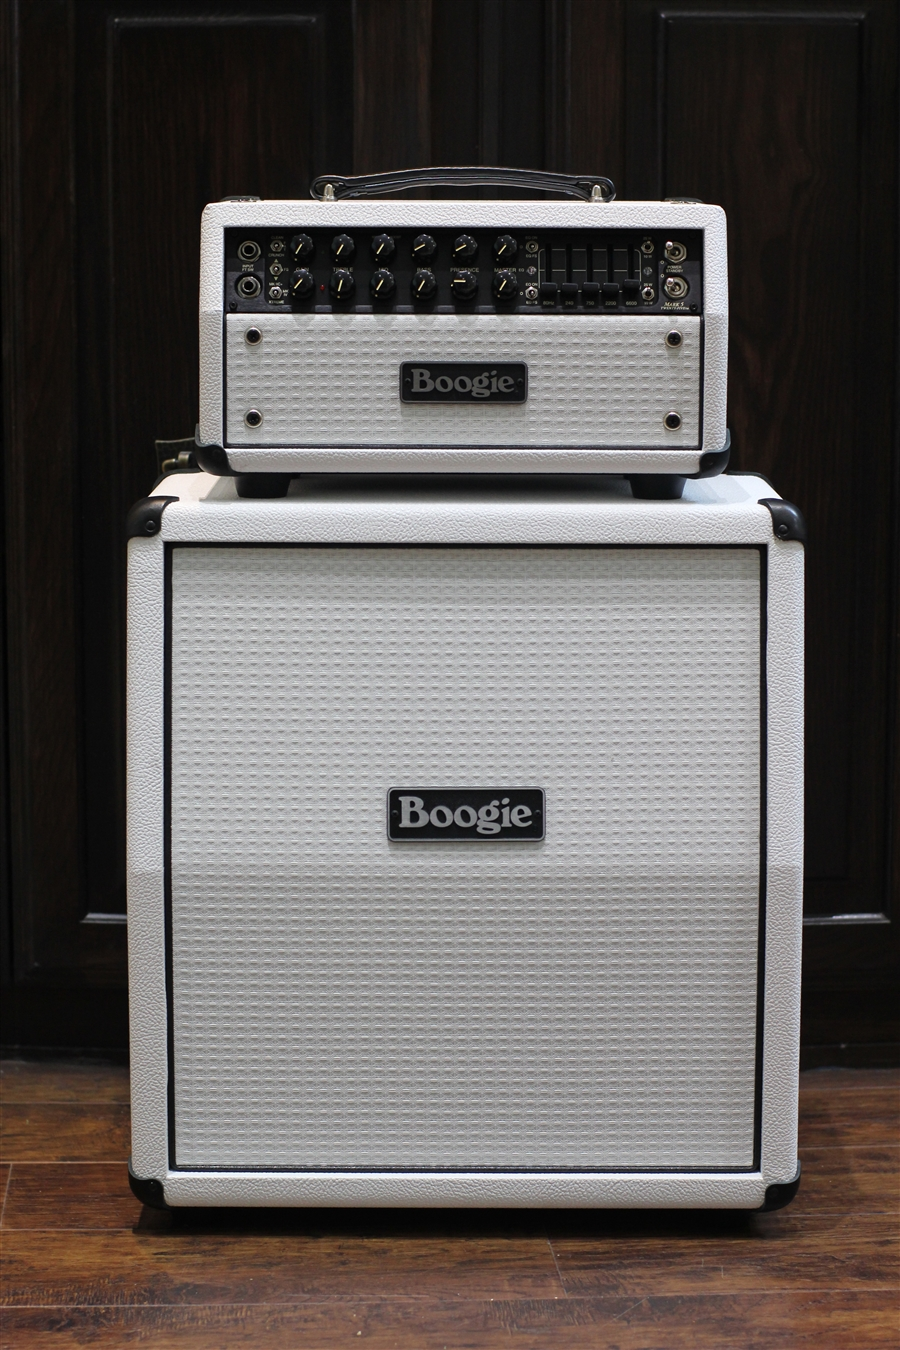 Mesa Boogie Mark Five 25 Head And Mini Rectifier 1x12 Slant Cabinet In Hot White With Grille